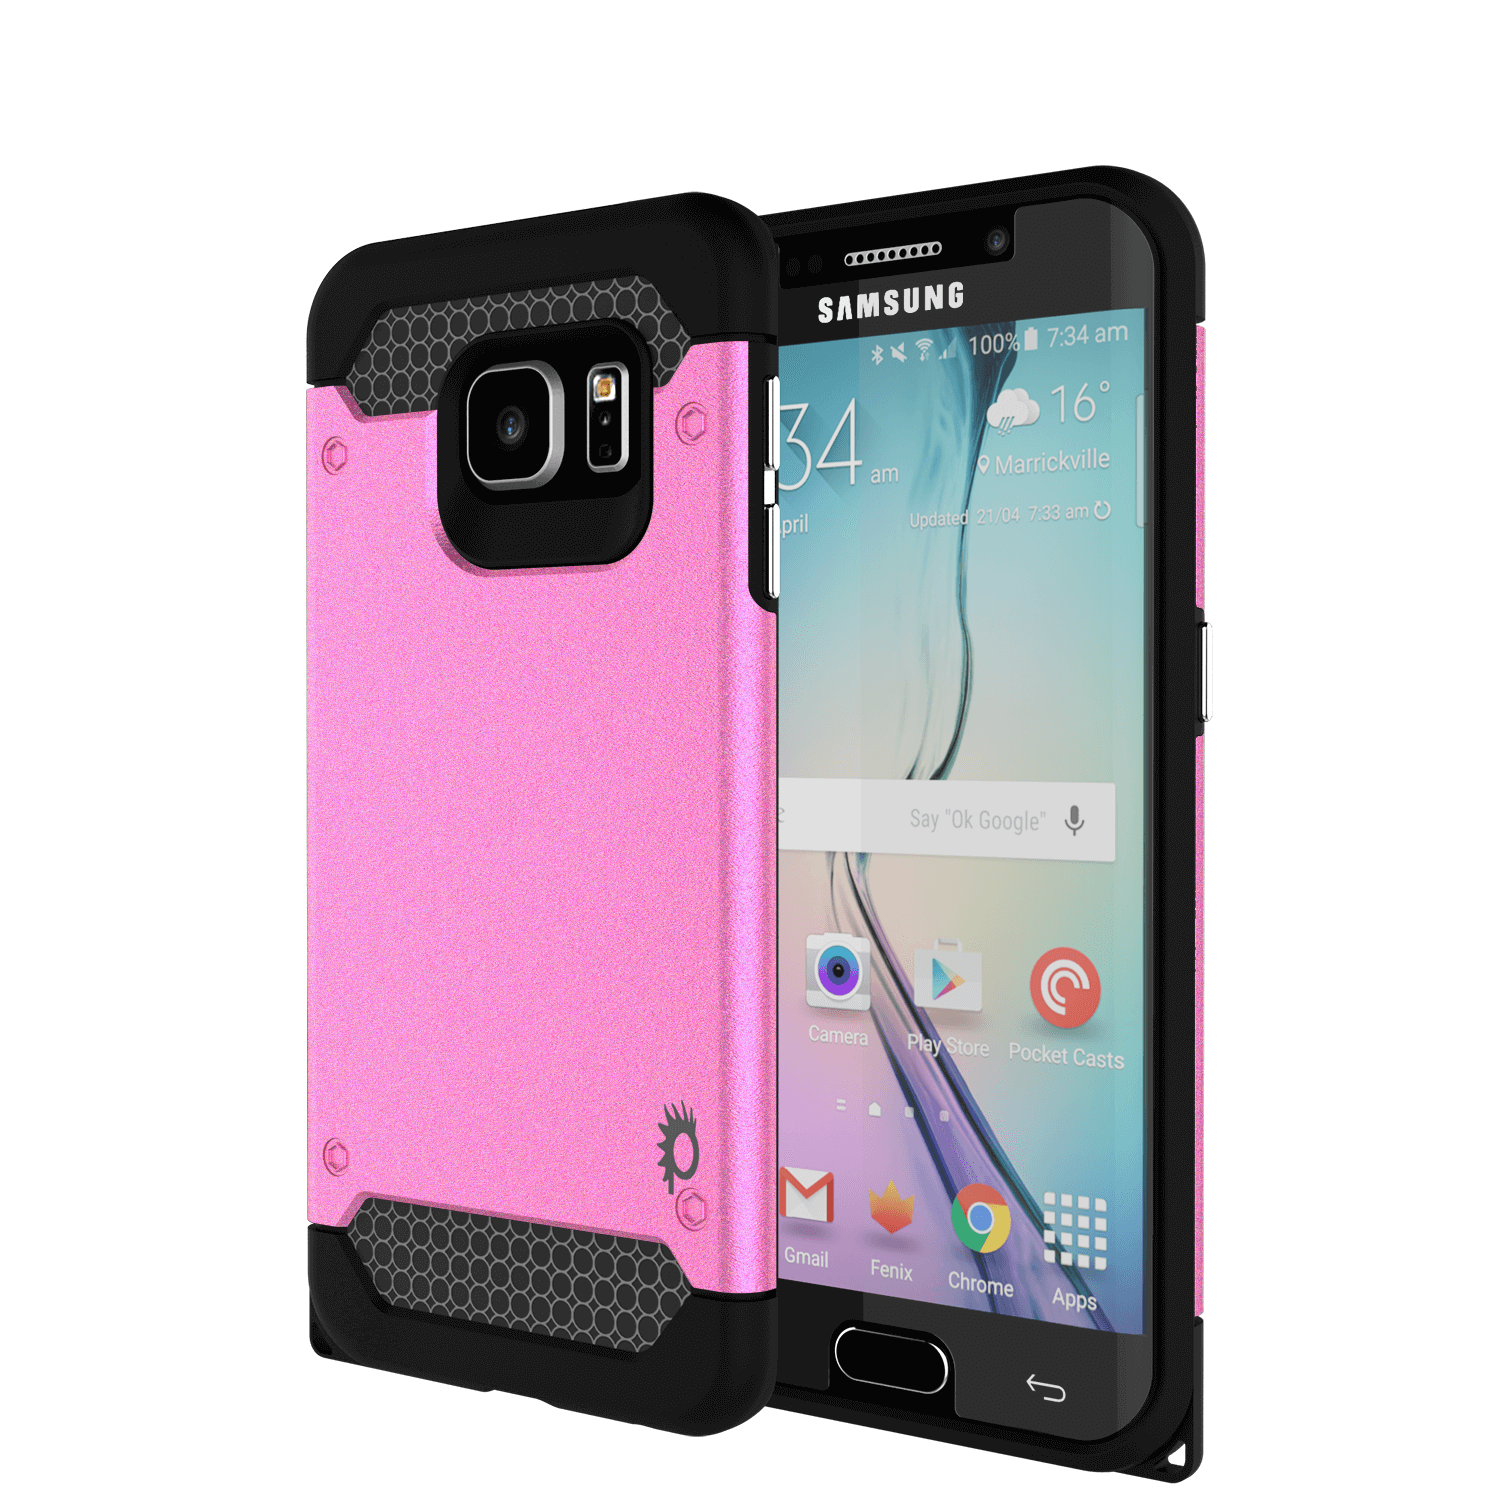 Galaxy s6 EDGE Plus Case PunkCase Galactic Pink Series Slim Protective Armor Soft Cover Case w/ Tempered Glass Protector Lifetime Warranty